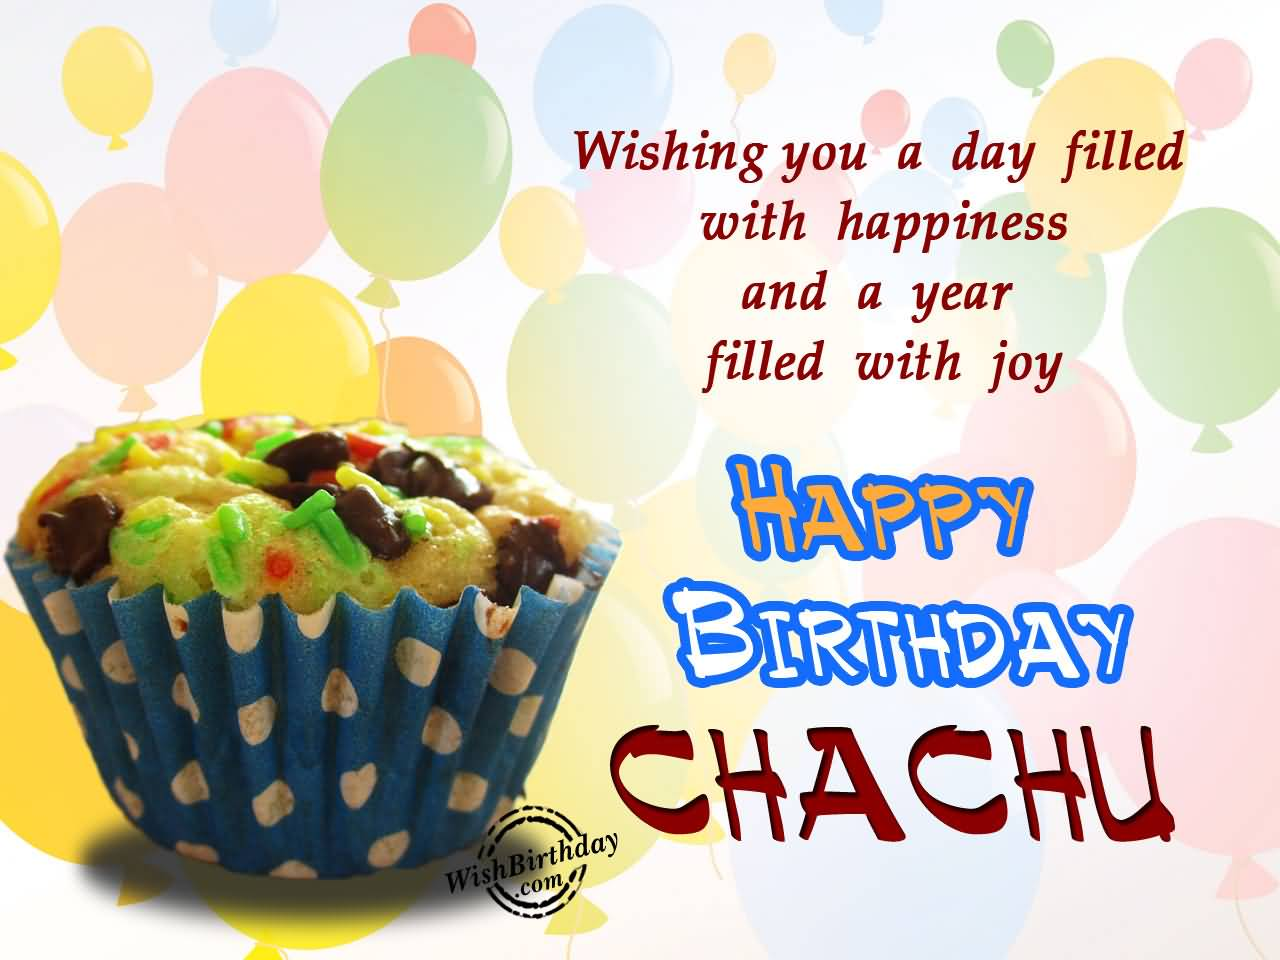 Wishing You A Day filled With Happiness And A Year Filled With Joy Happy Birthday Chachu